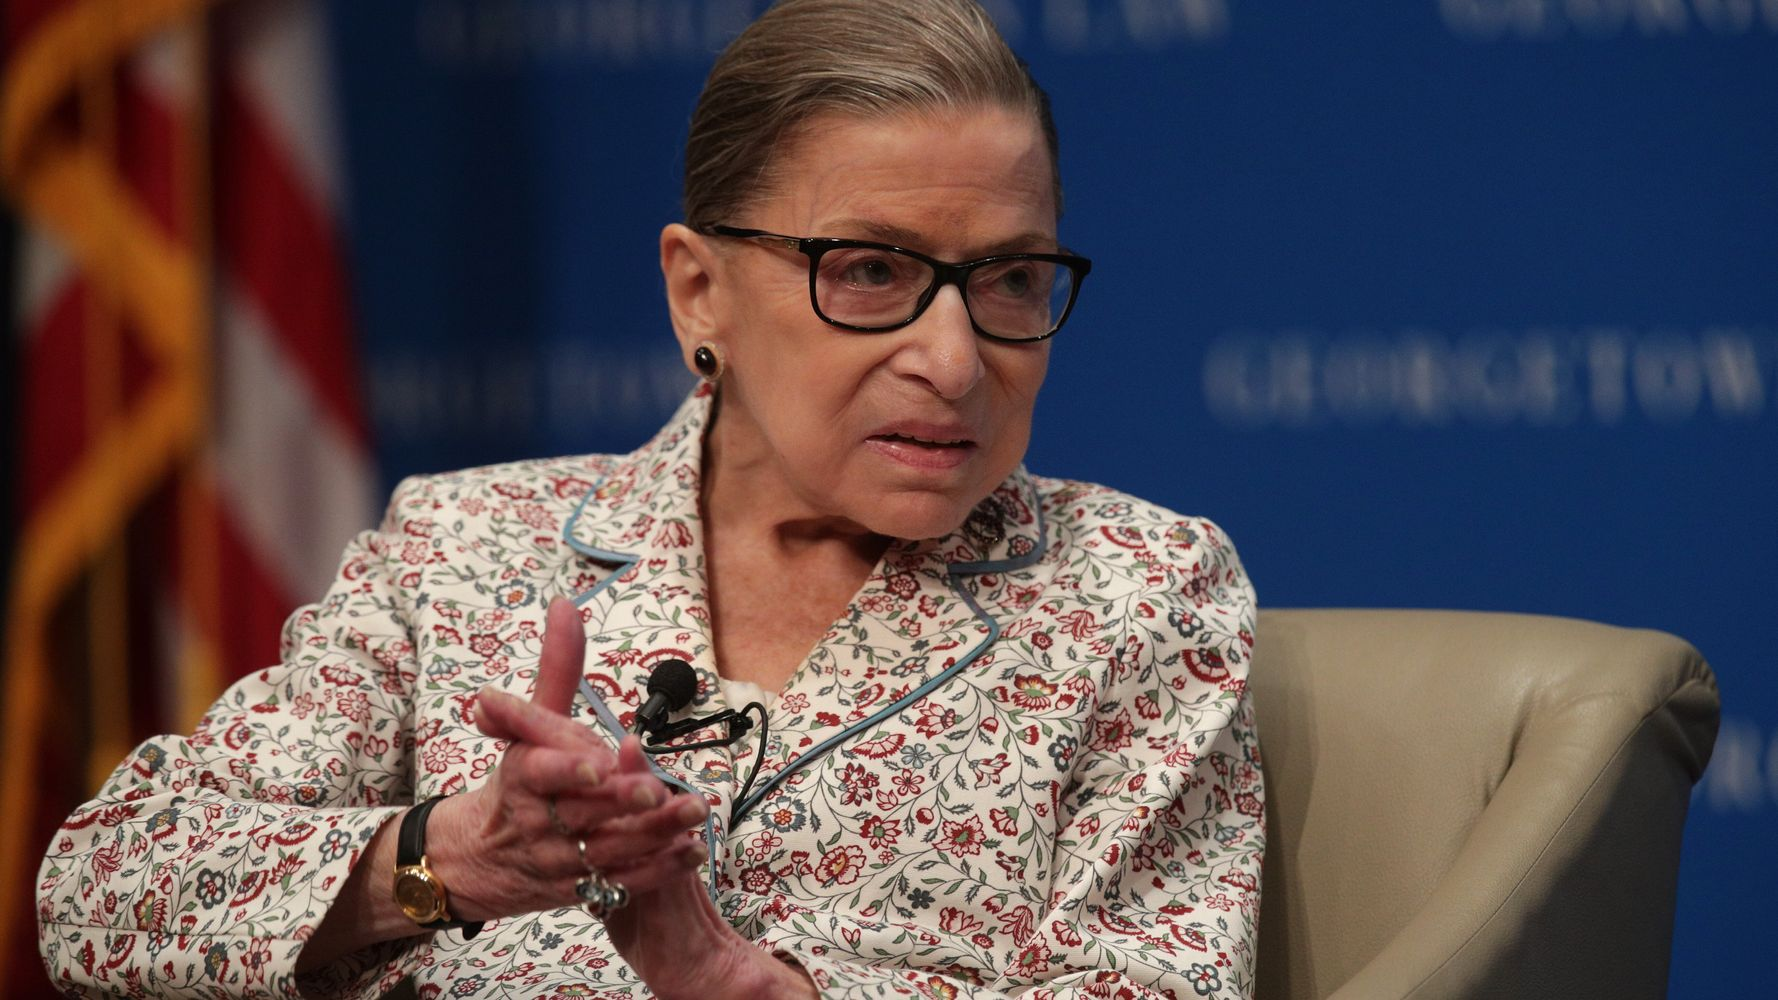 Ruth Bader Ginsburg Successfully Completes Radiation Treatment